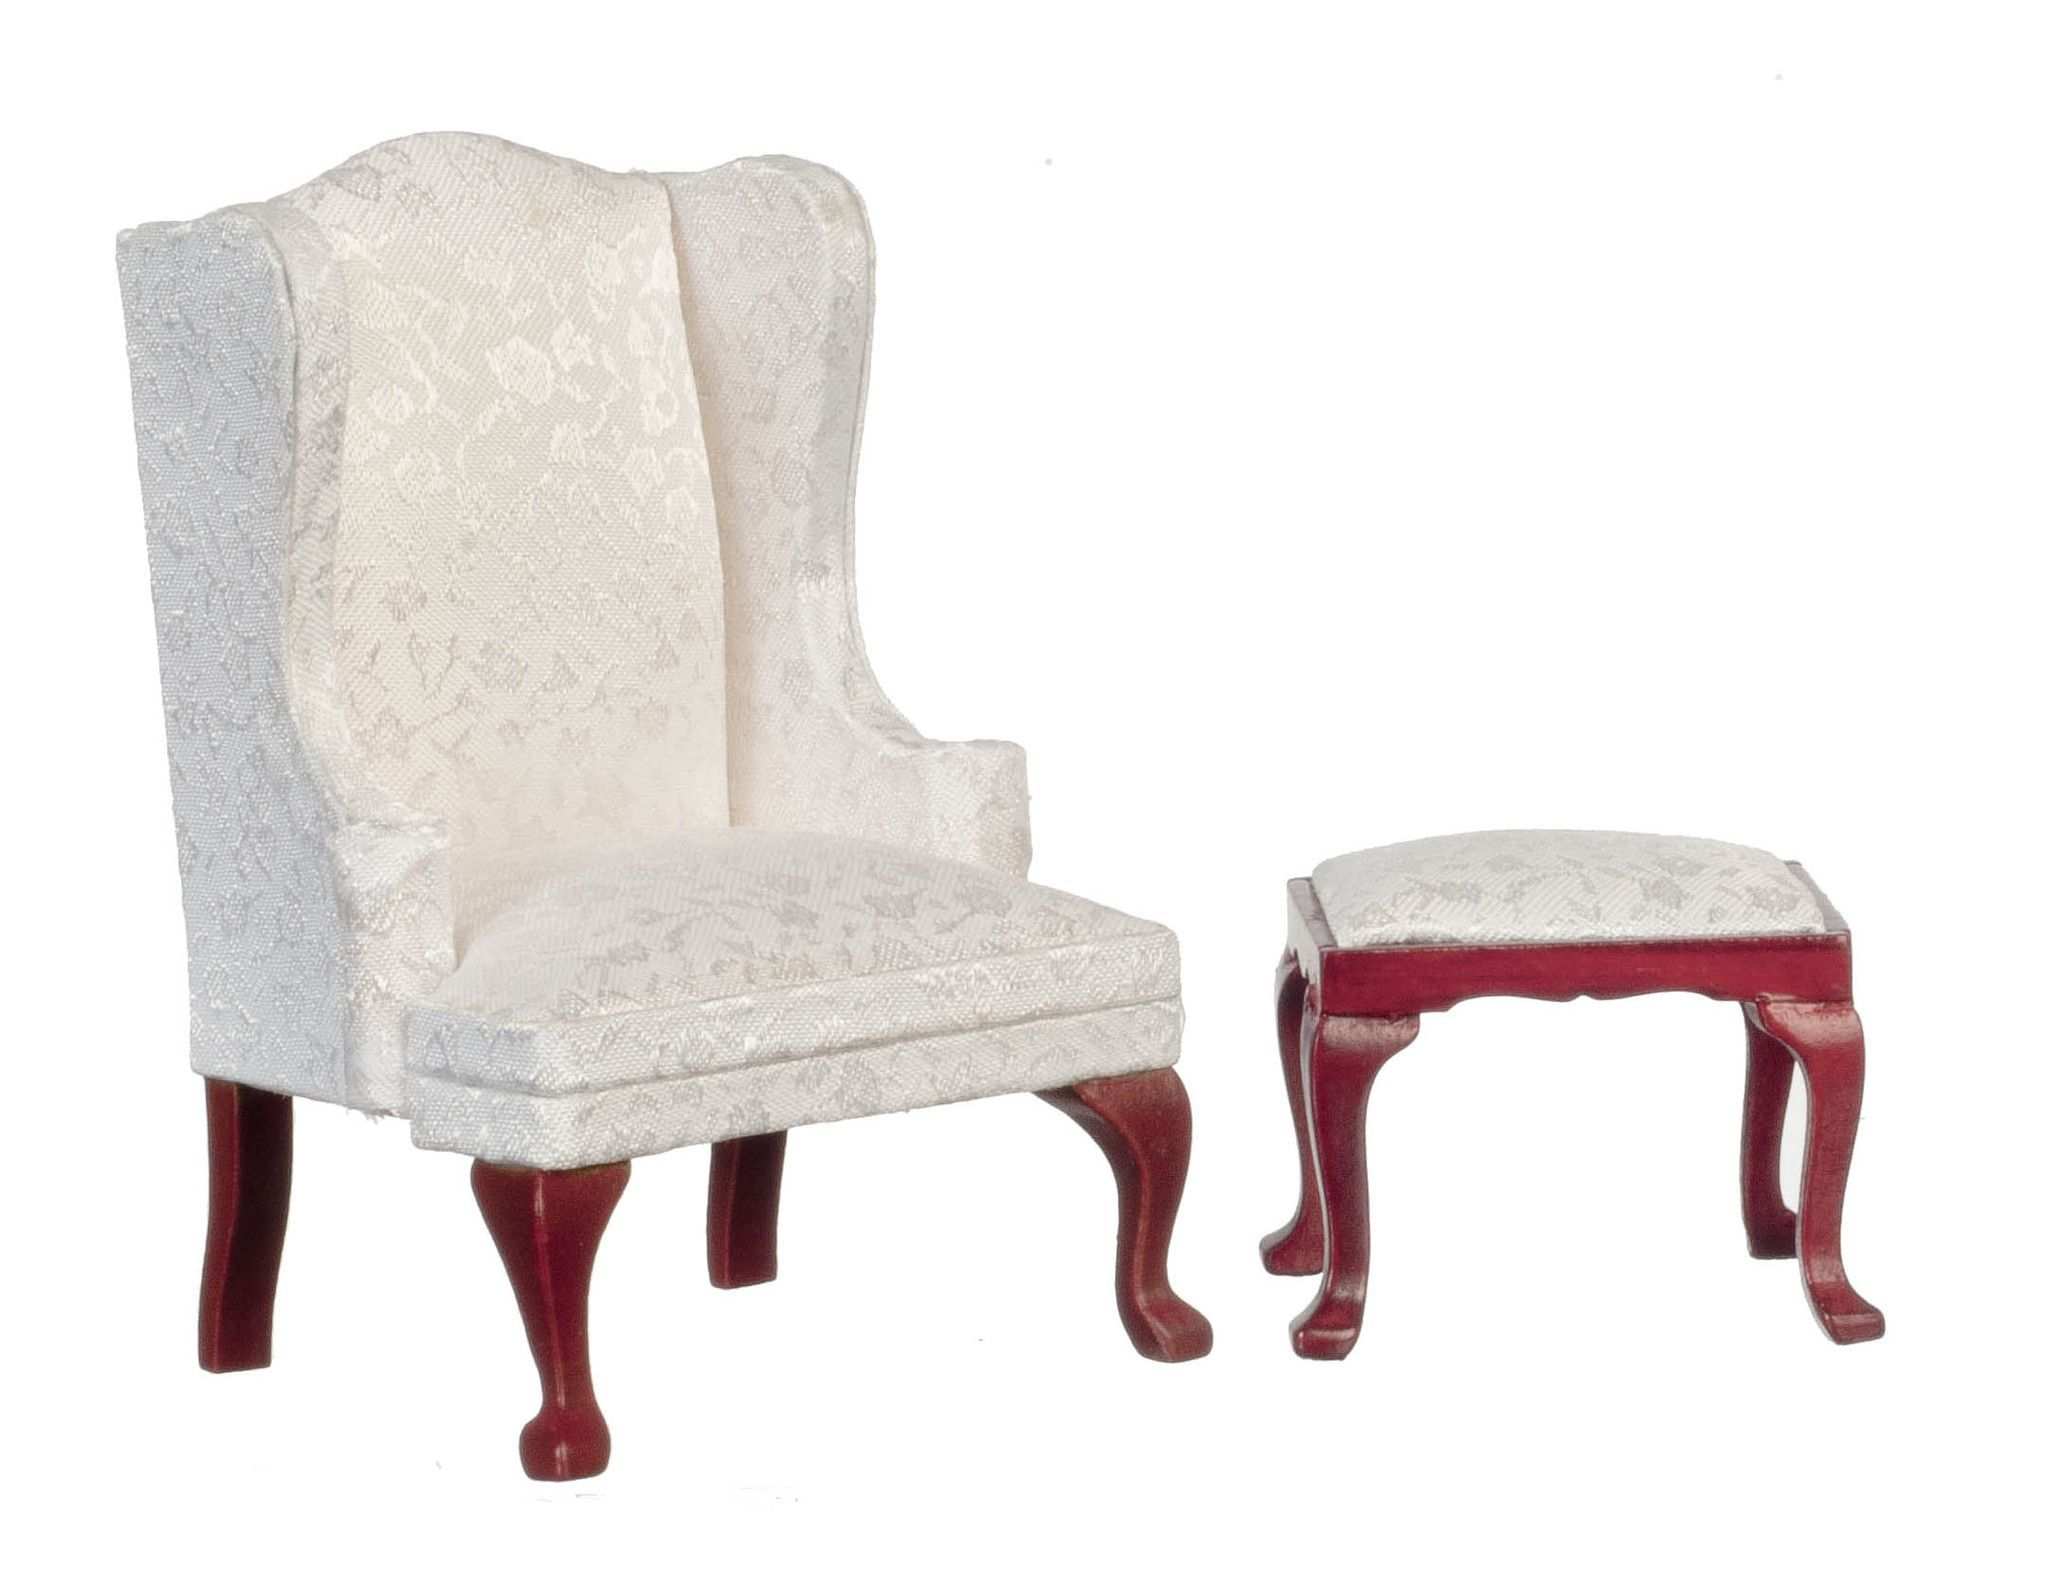 Queen Anne Wing Chair And Stool   Mahogany With White